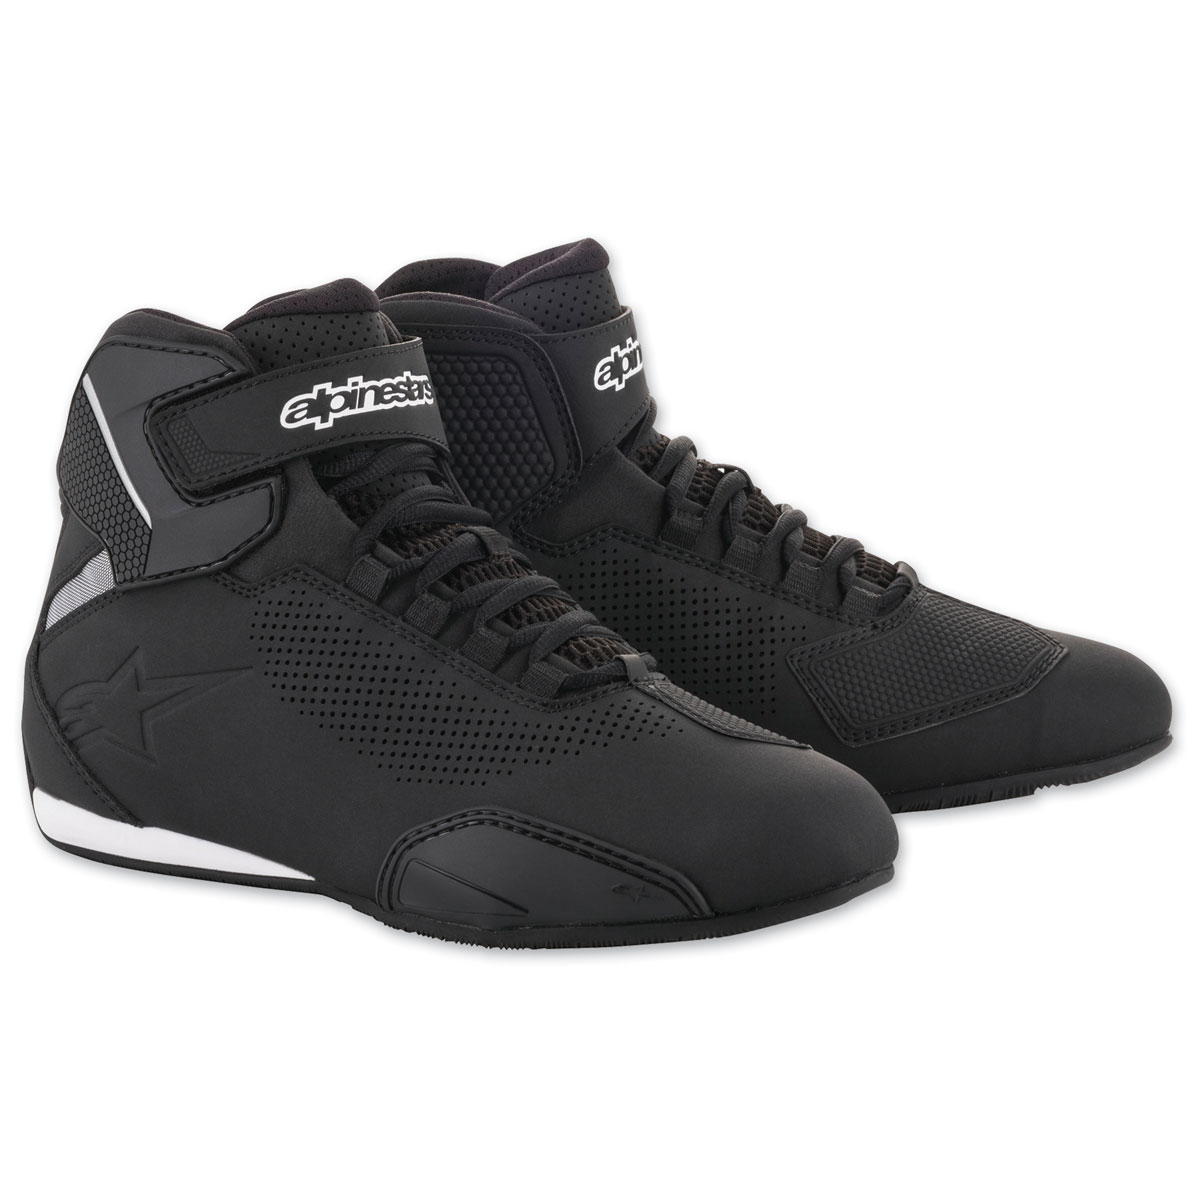 Alpinestars Men's Sektor Vented Black Shoes